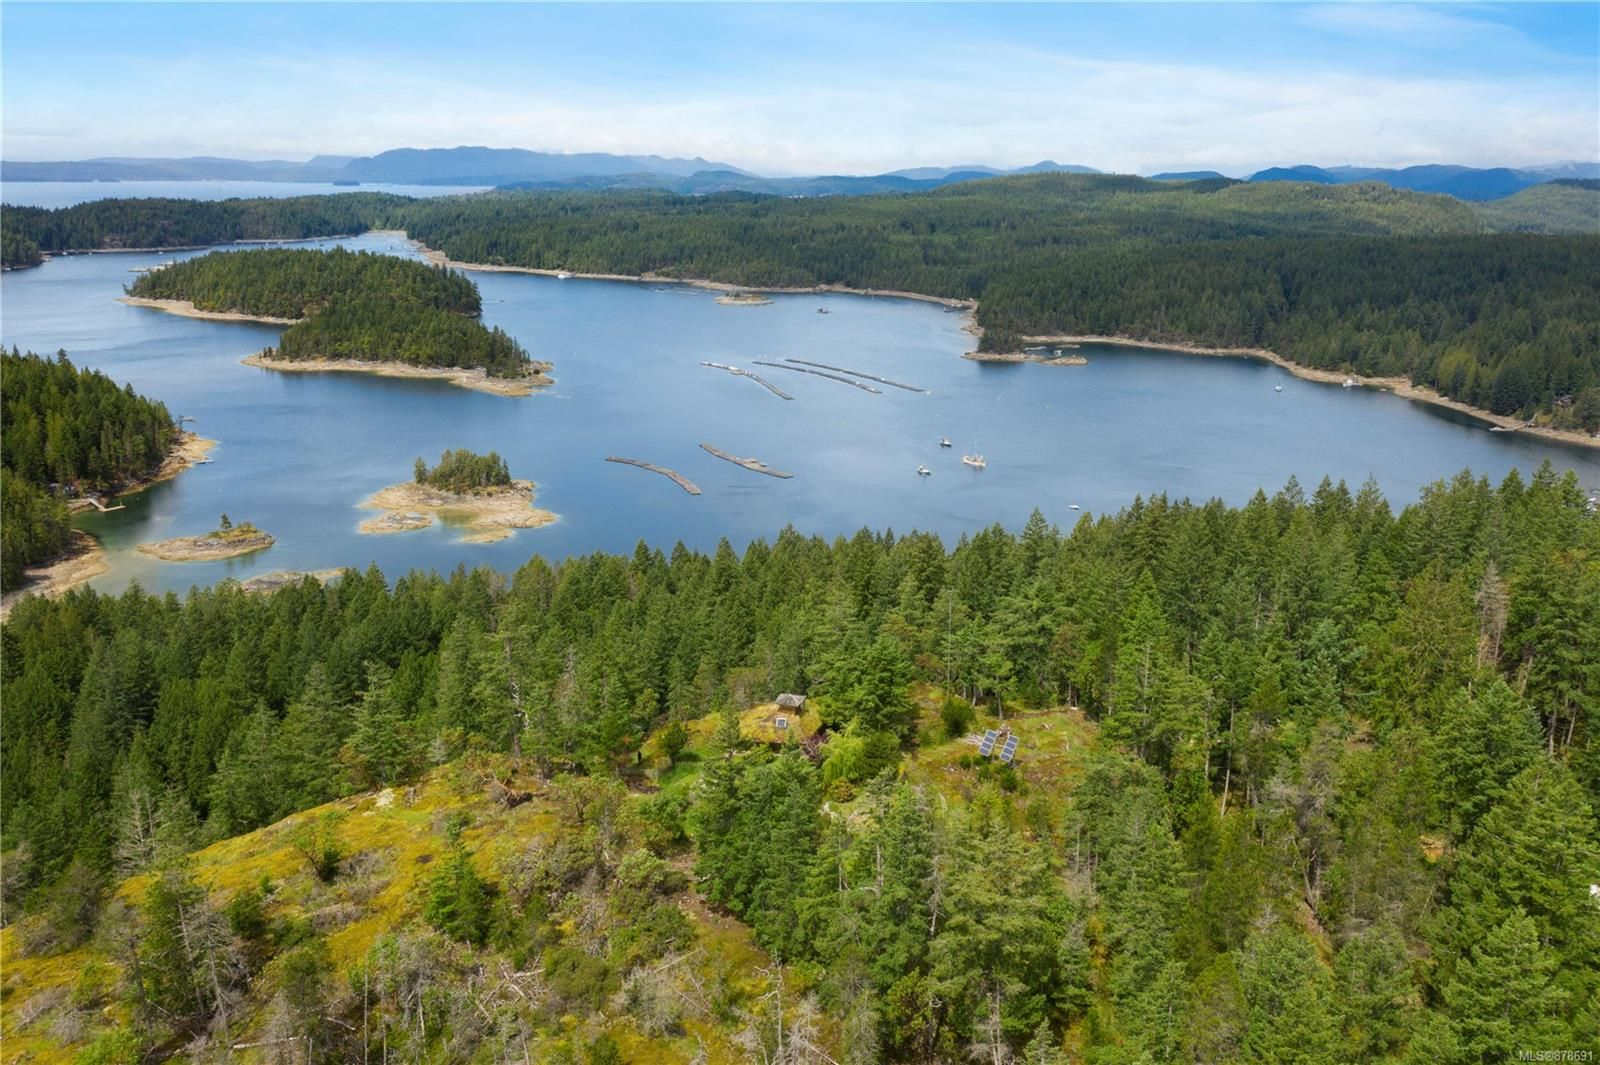 Photo 3: Photos: 979 Thunder Rd in : Isl Cortes Island House for sale (Islands)  : MLS®# 878691